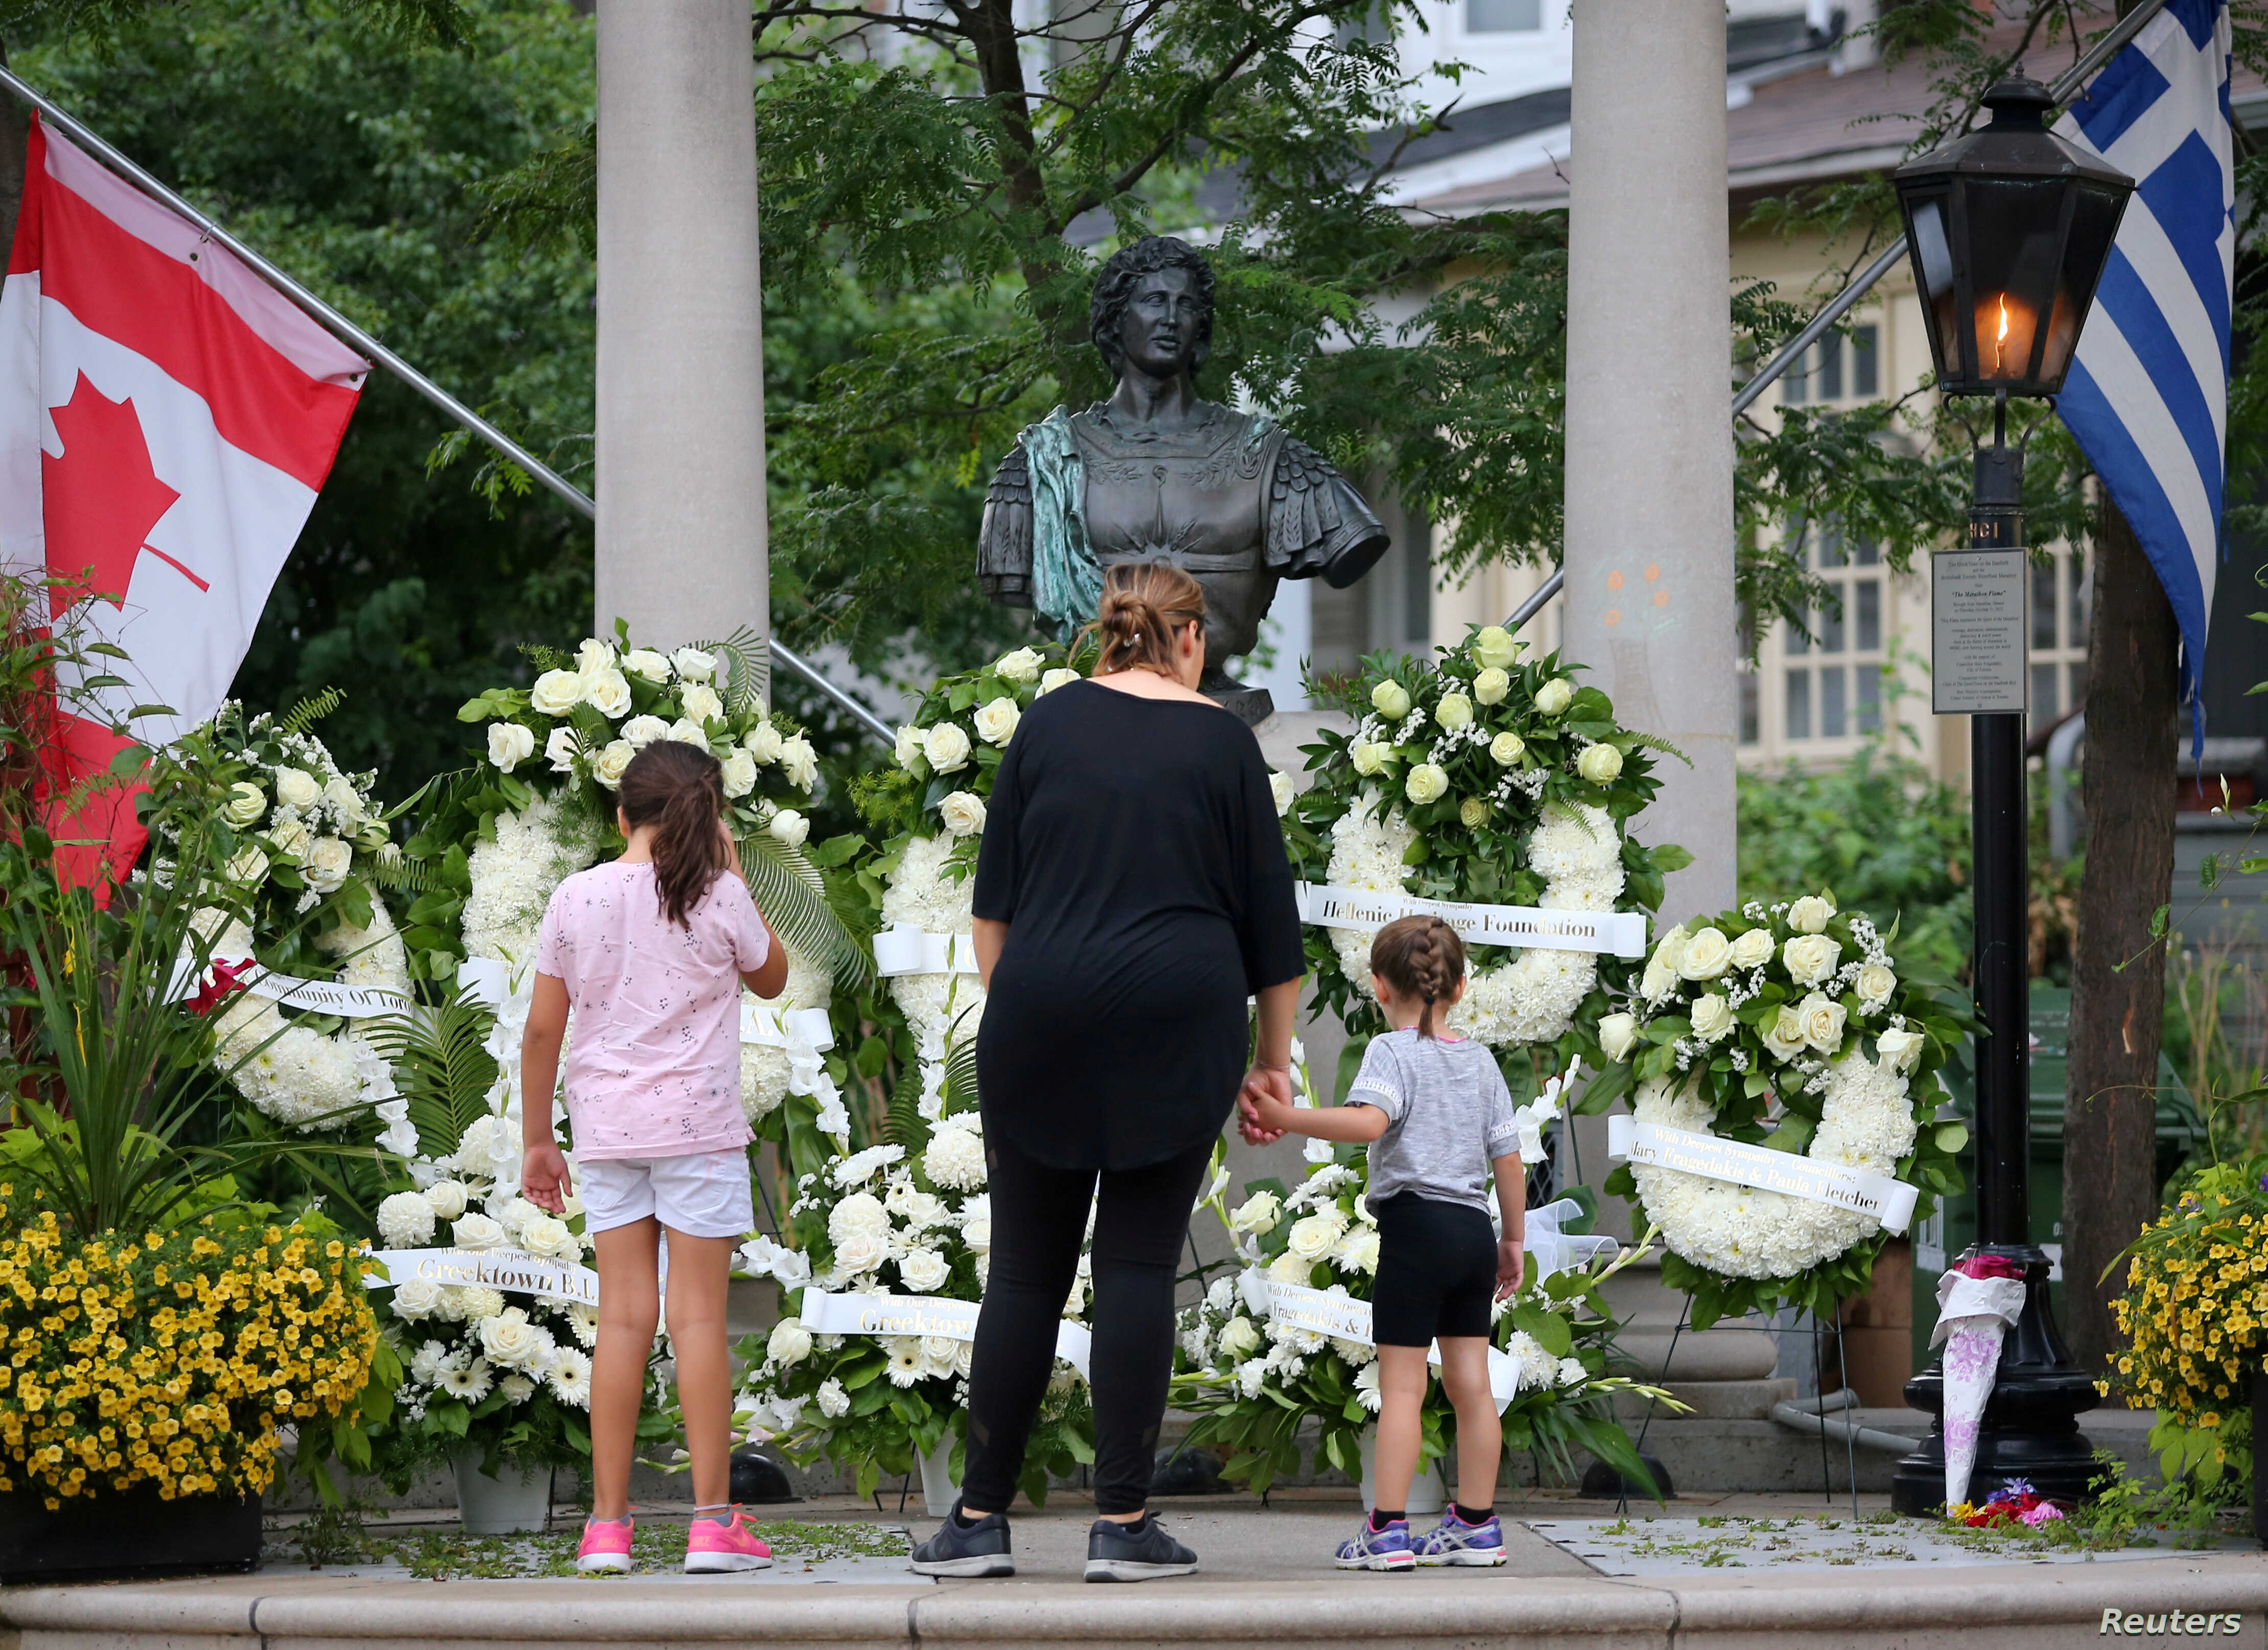 FILE - Canadian and Greek flags hang above memorial wreaths at Alexander the Great Parkette, the scene of a mass shooting on Danforth Avenue in Toronto, Ontario, Canada, July 24, 2018.